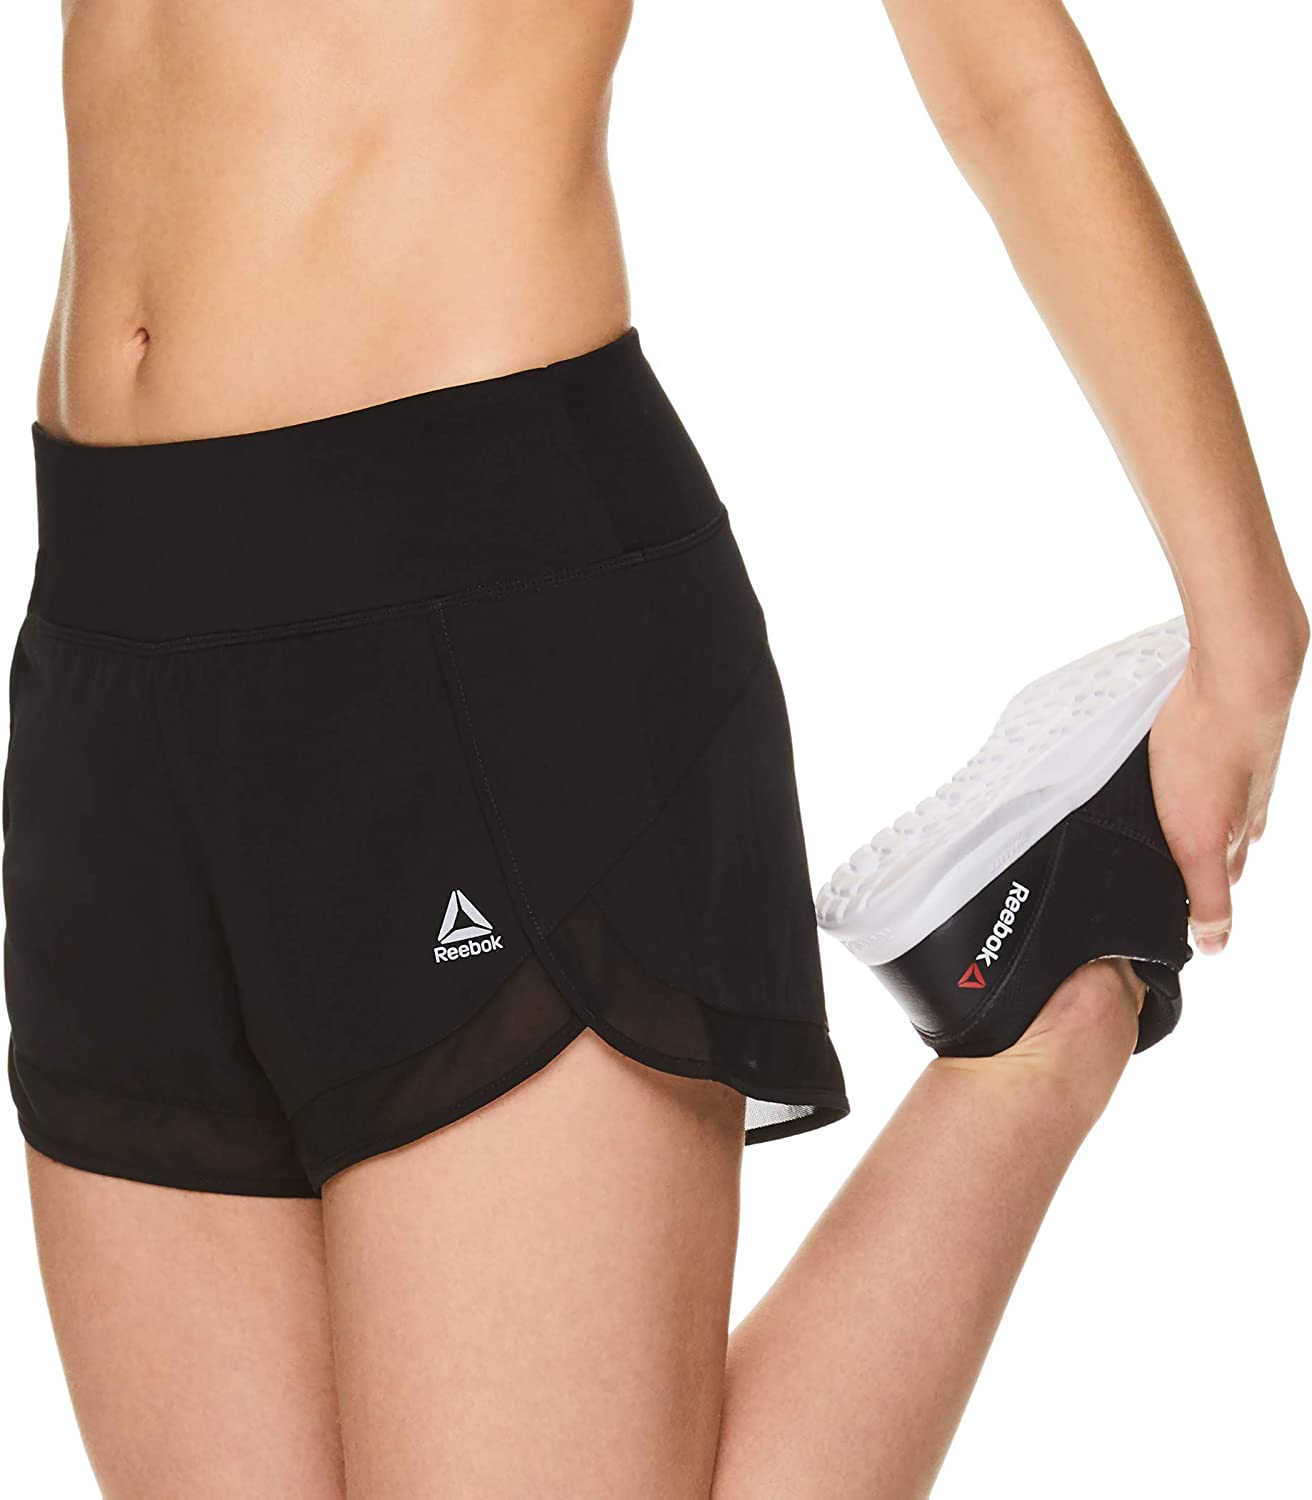 Reebok Women's Running Shorts, Relaxed Fit and Mid-Rise Waist Training Shorts w/ Liner - 3 1/4 Inch Inseam : Clothing